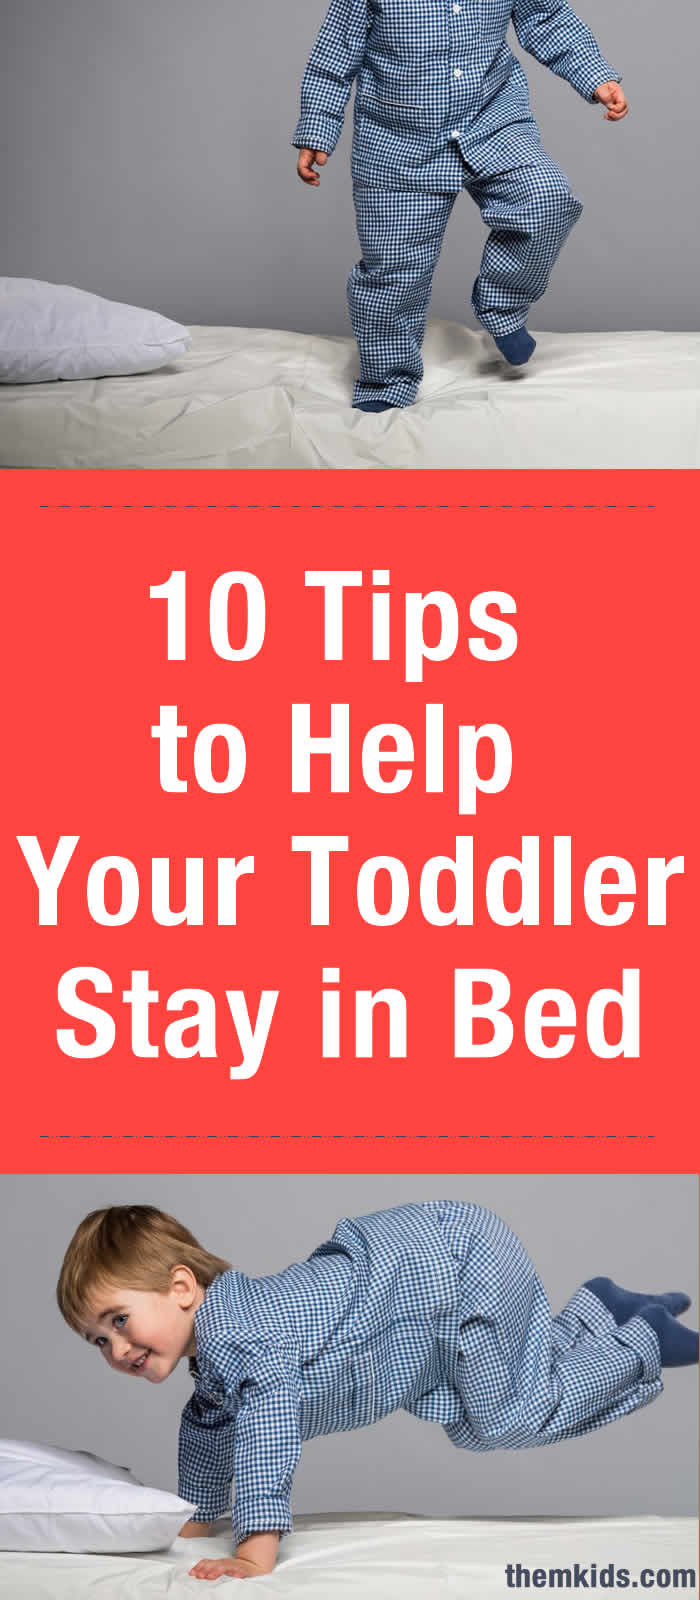 10 Tips to Help Your Toddler Stay in Bed